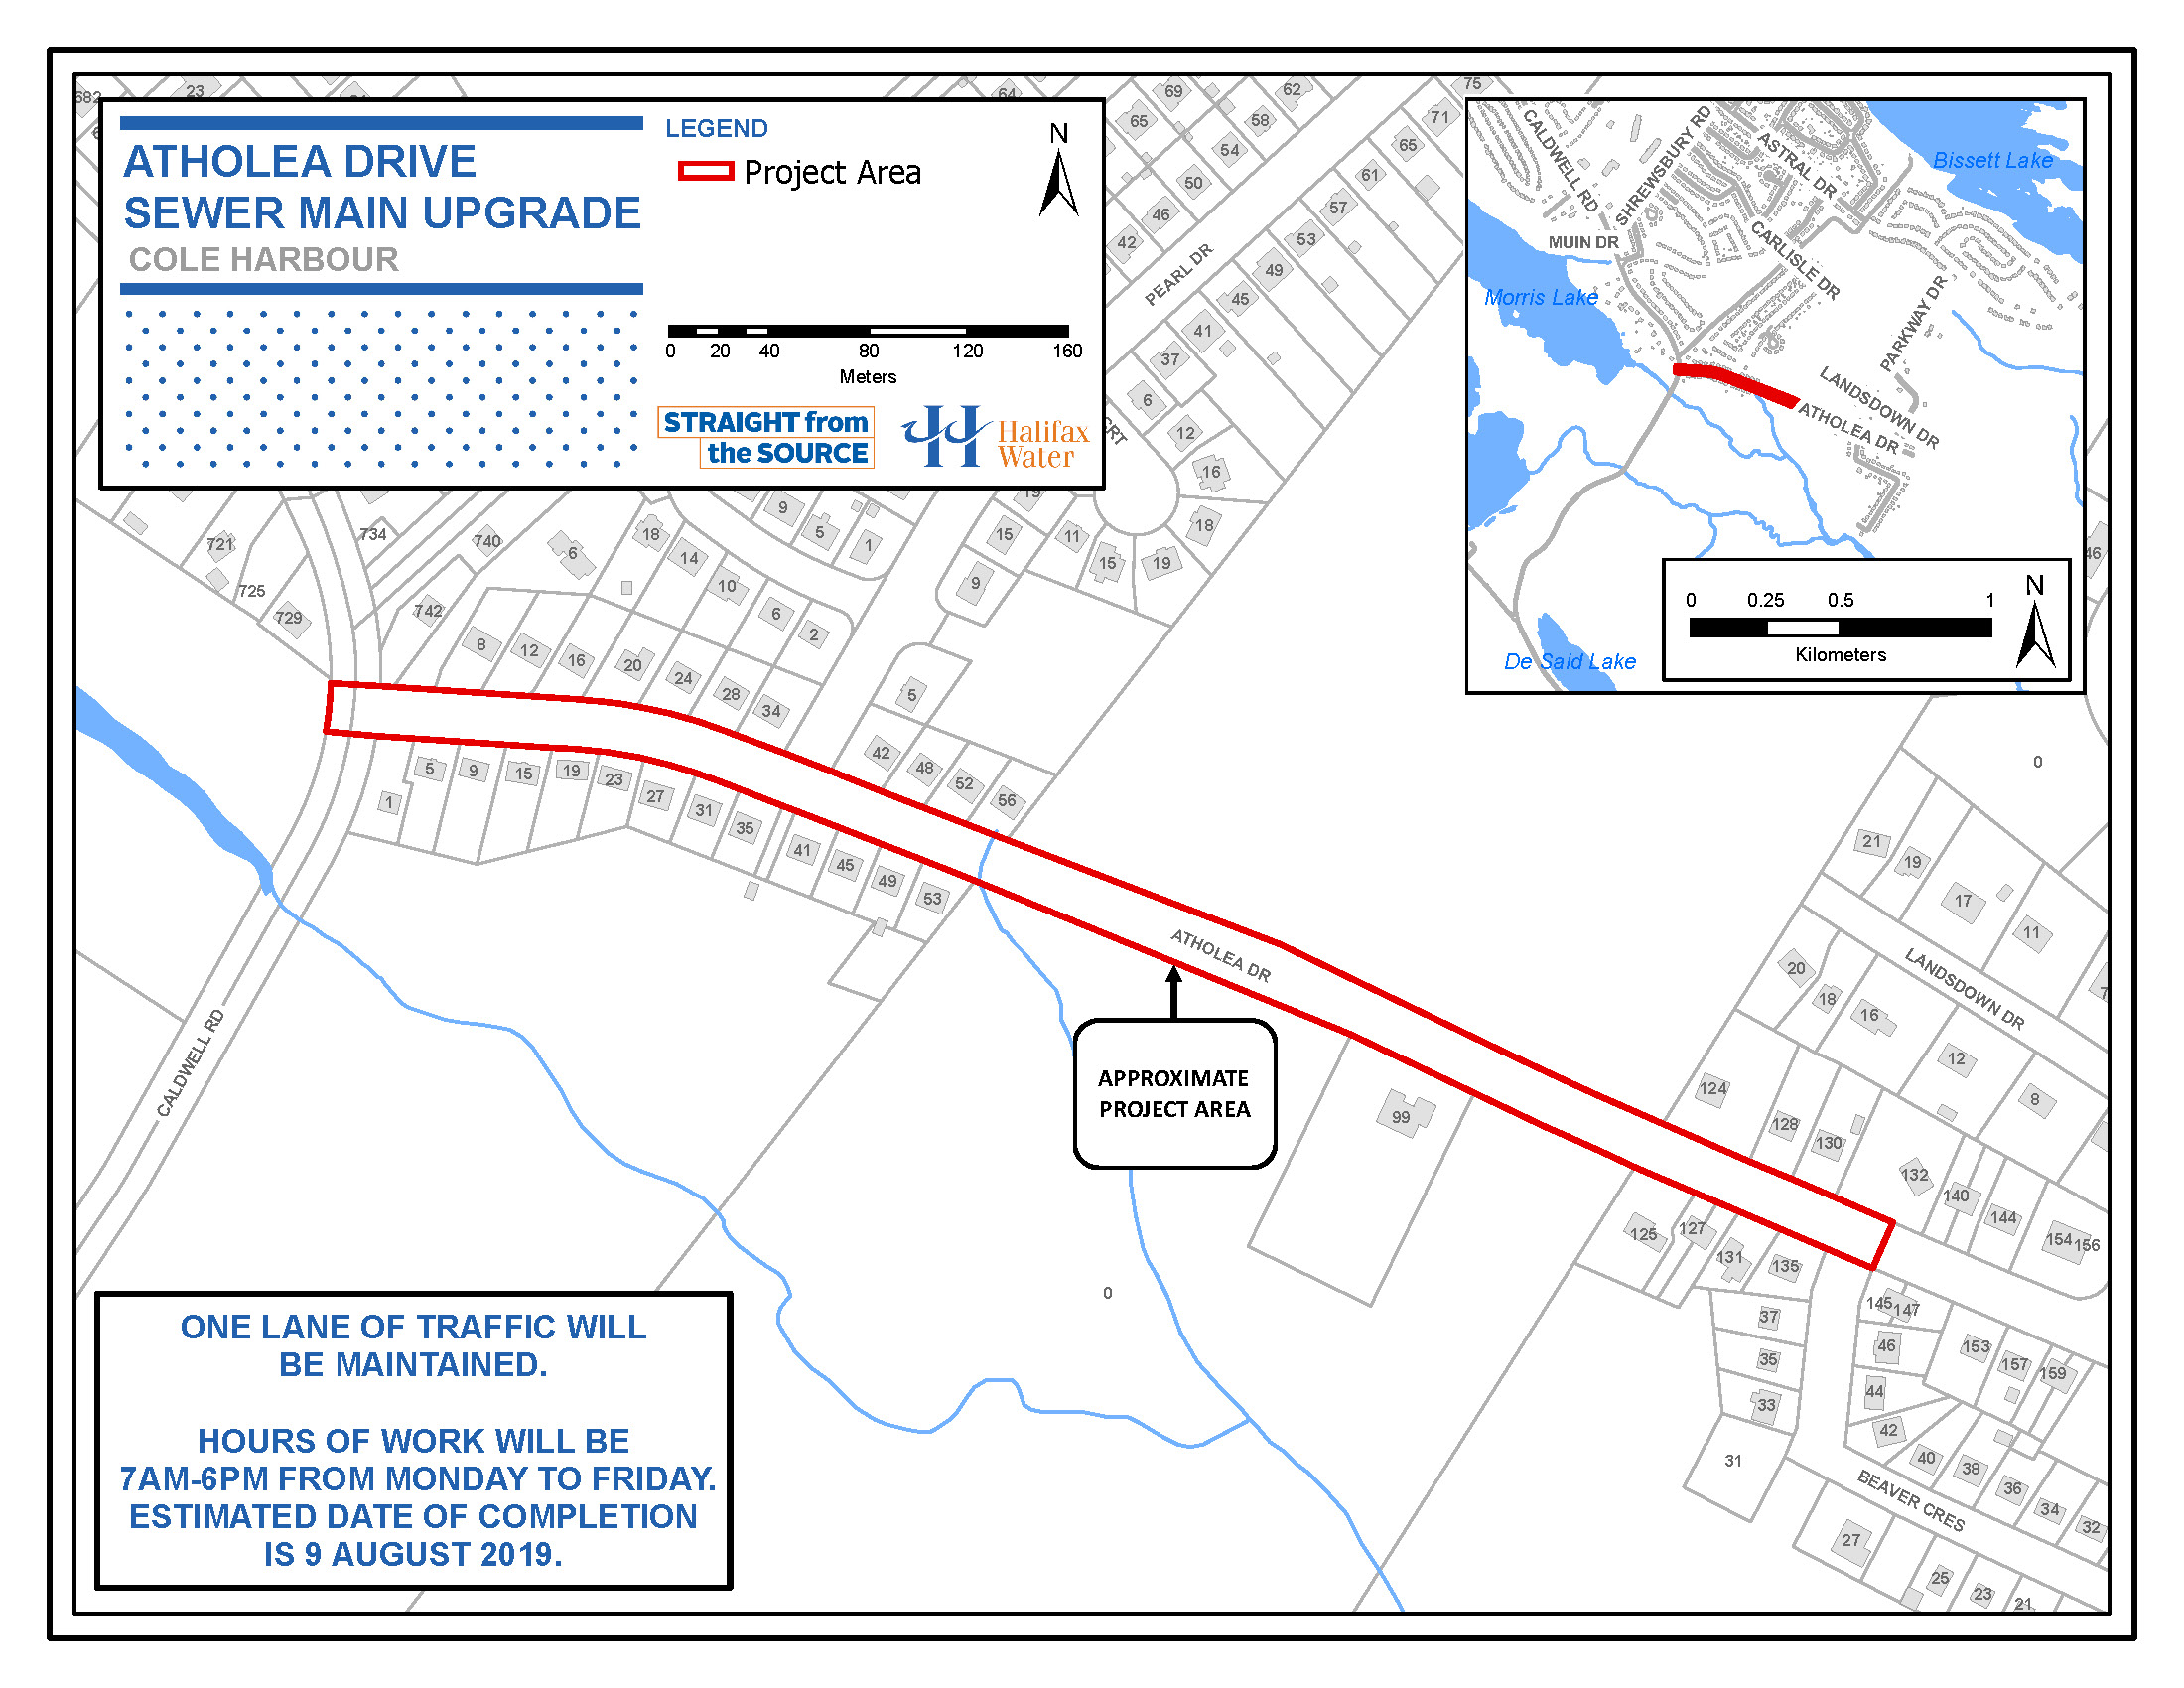 Atholea Drive Sewer Main Upgrade Map of Work Area